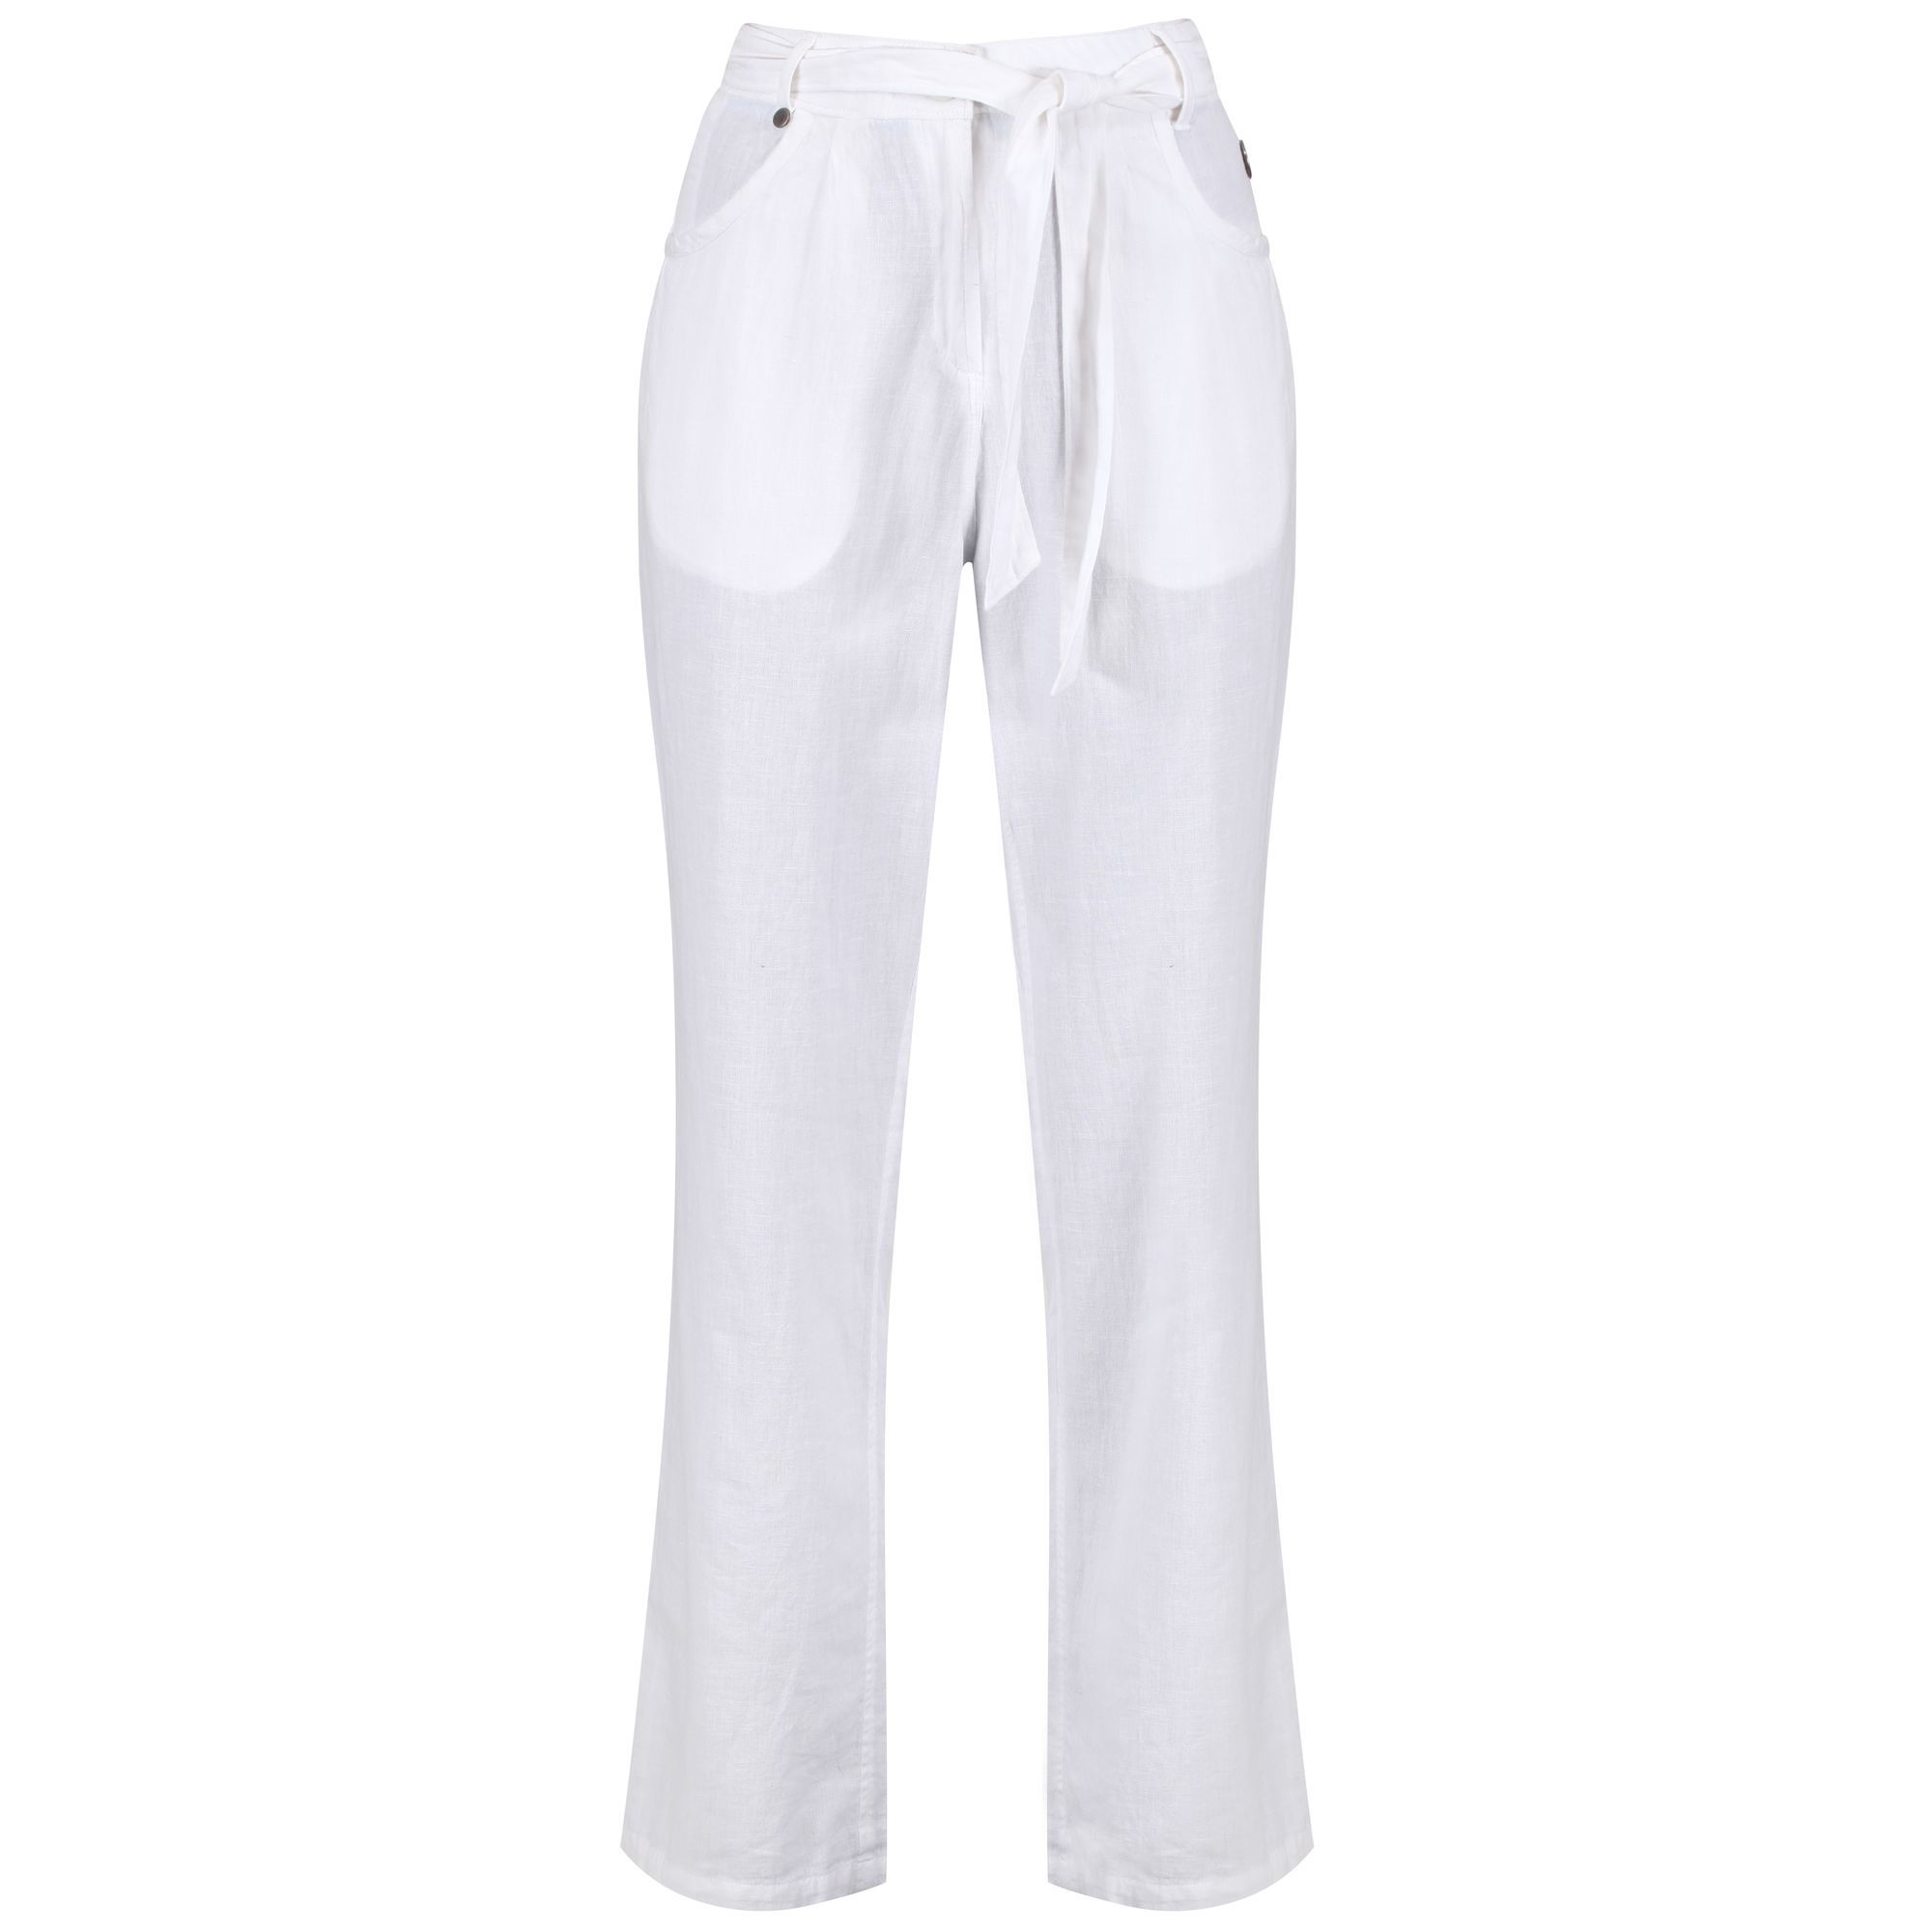 Regatta Quinetta Trouser, White